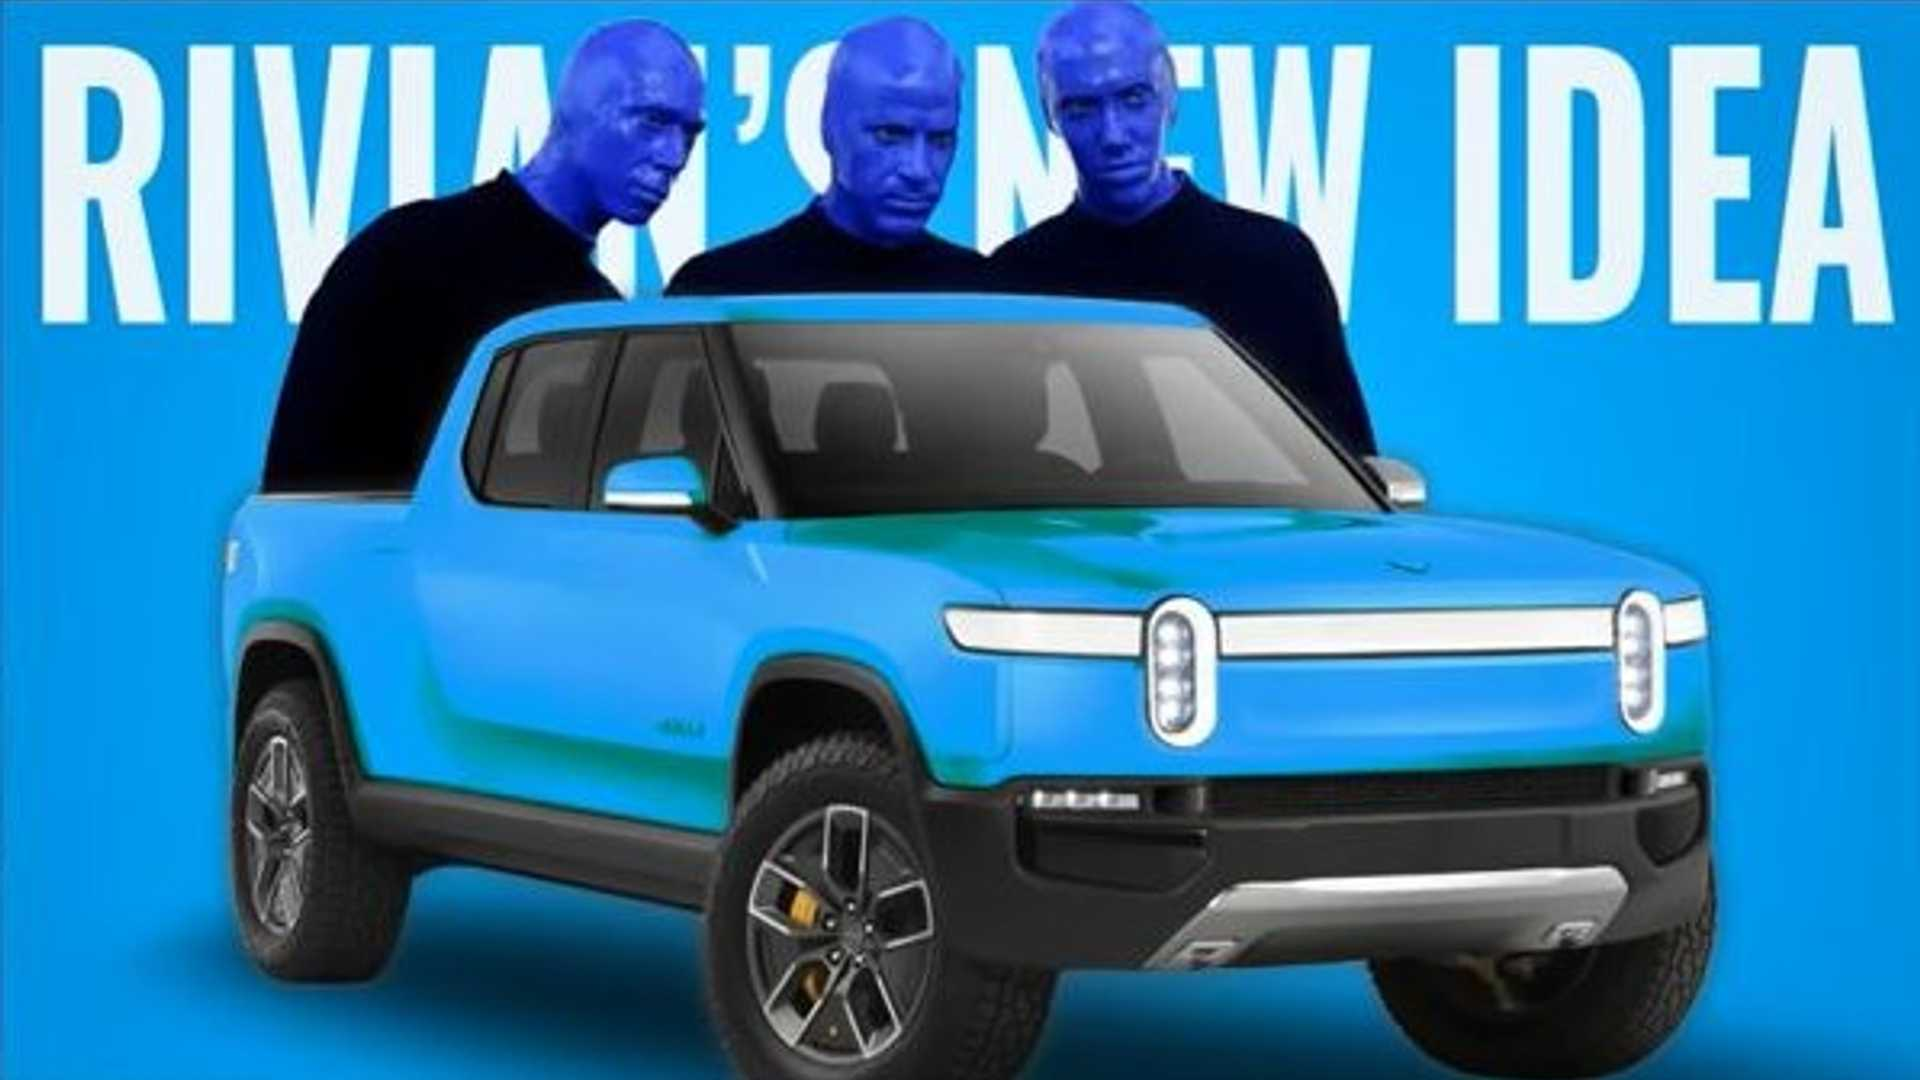 Rivian R1T: What's The Story With Rivian's New Pricing Plan?